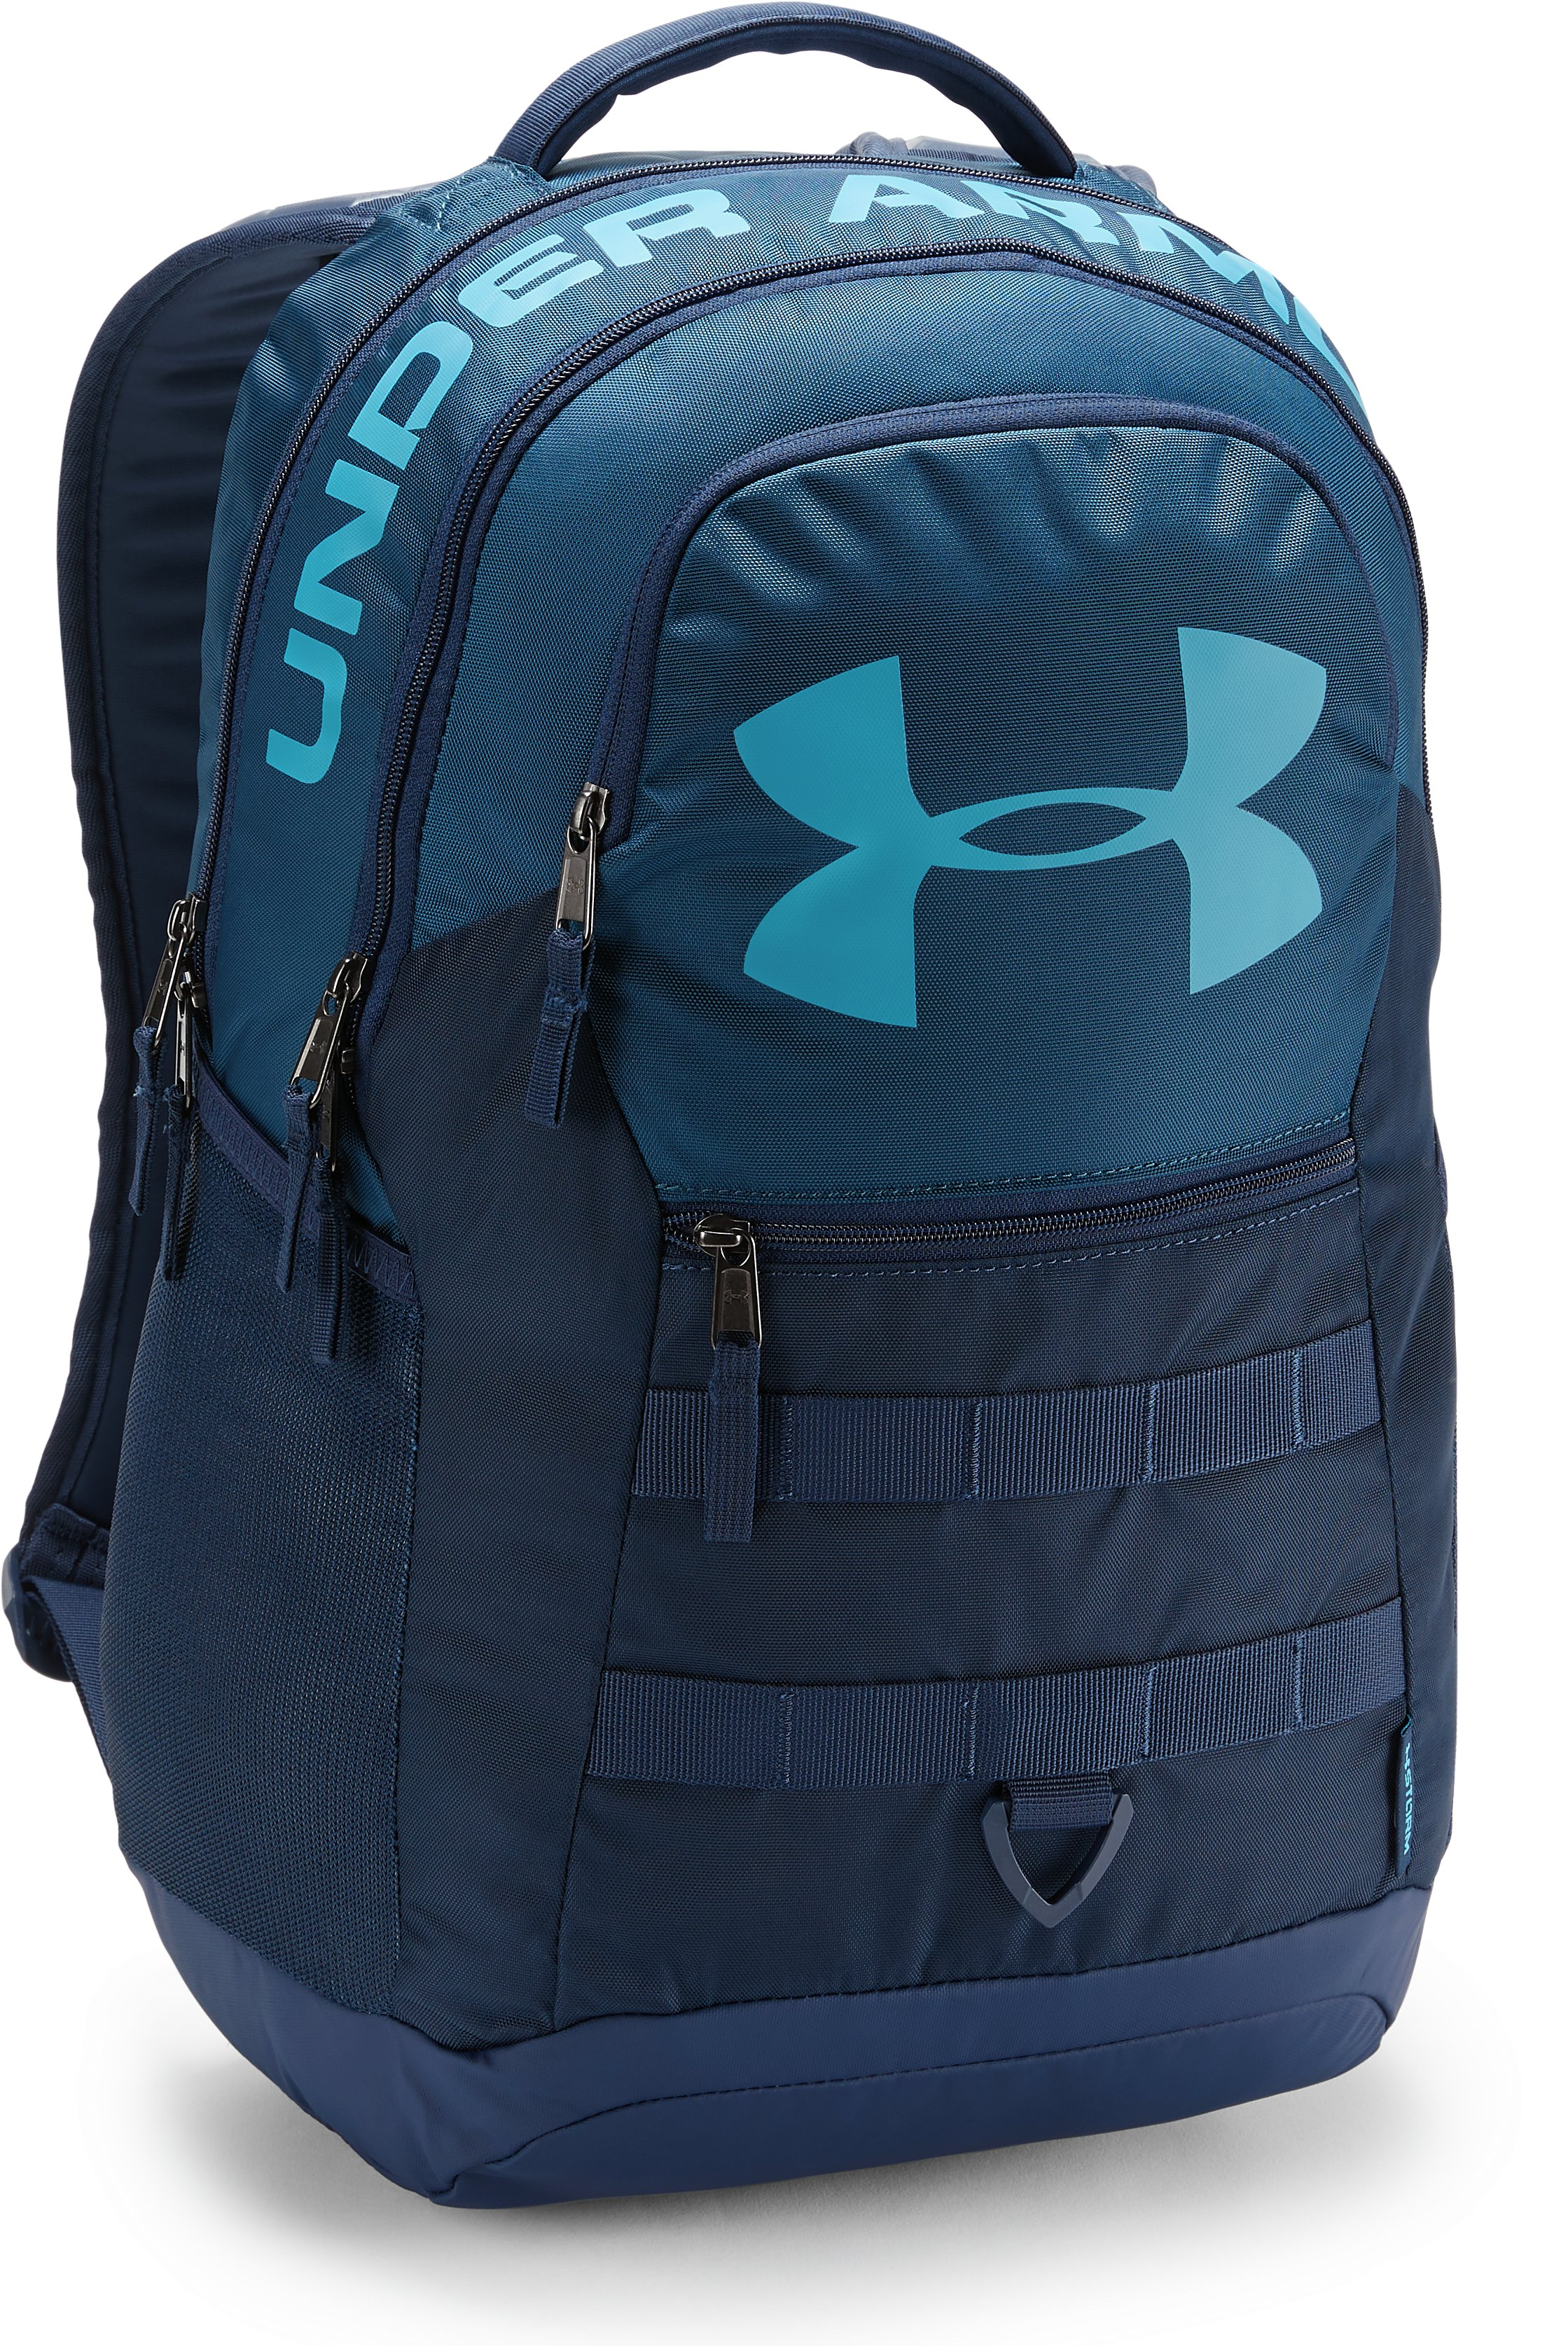 UA Big Logo 5.0 Backpack, Techno Teal